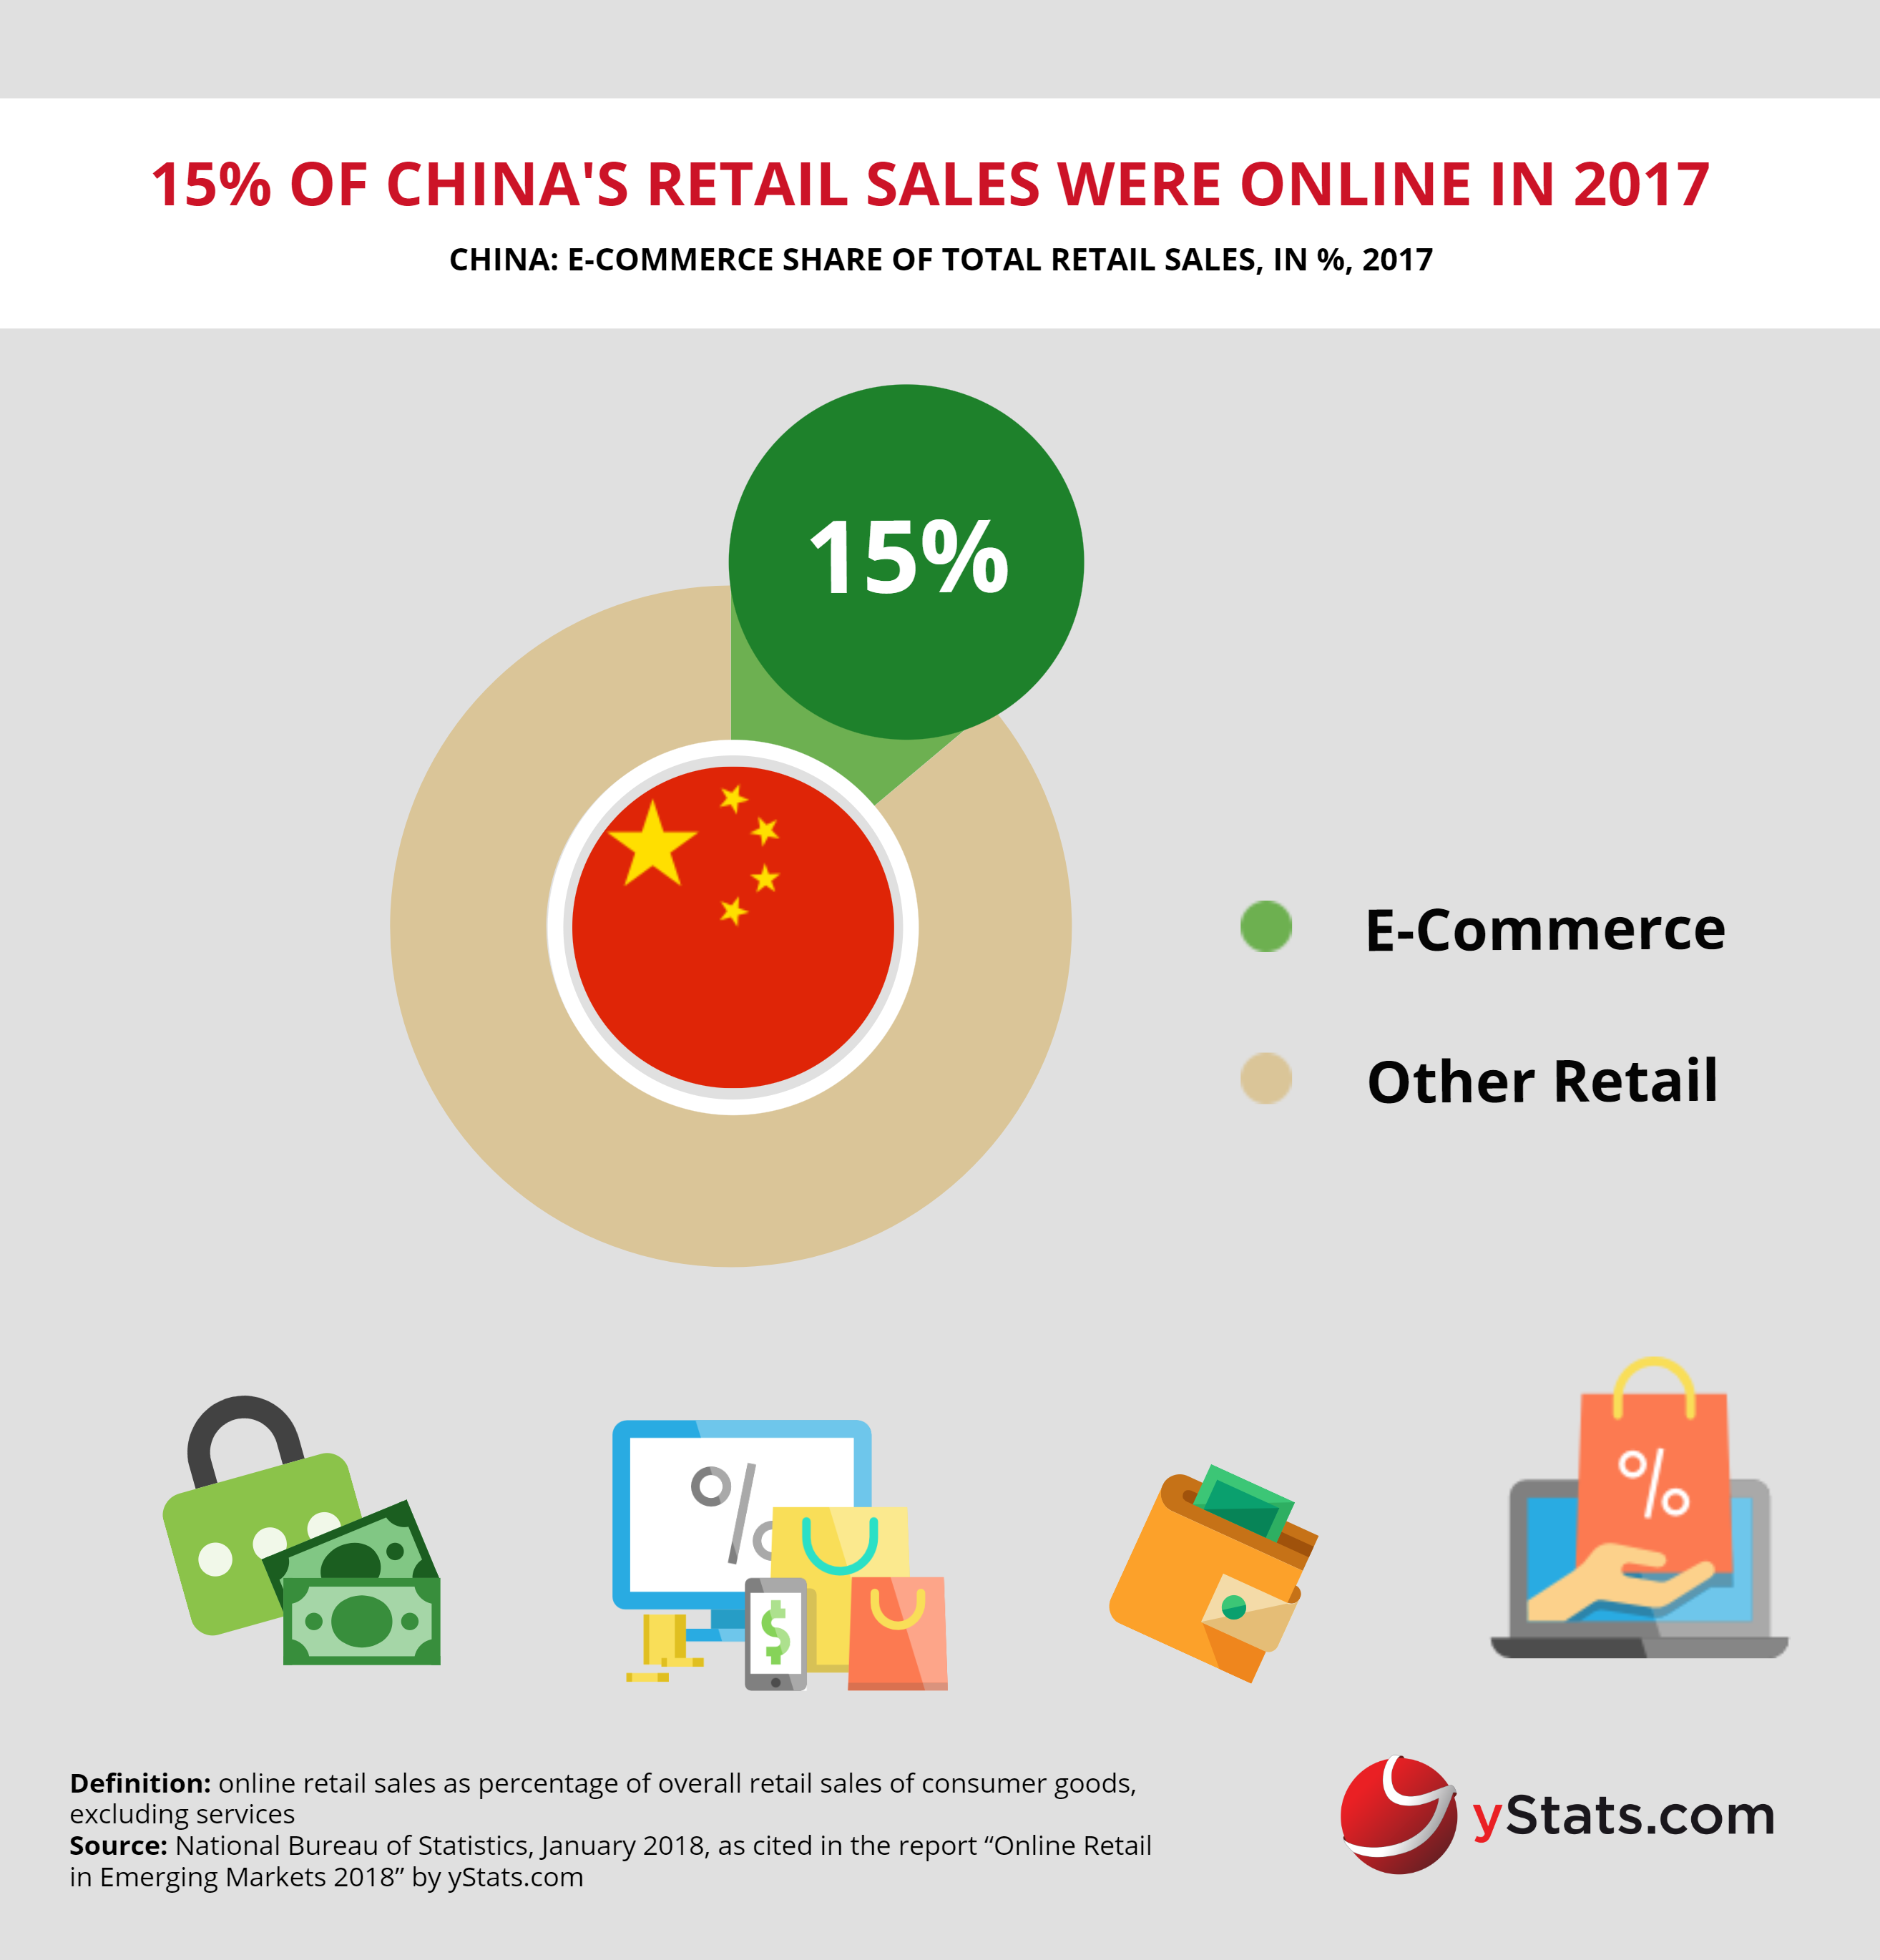 ecommerce share of retail sales in china